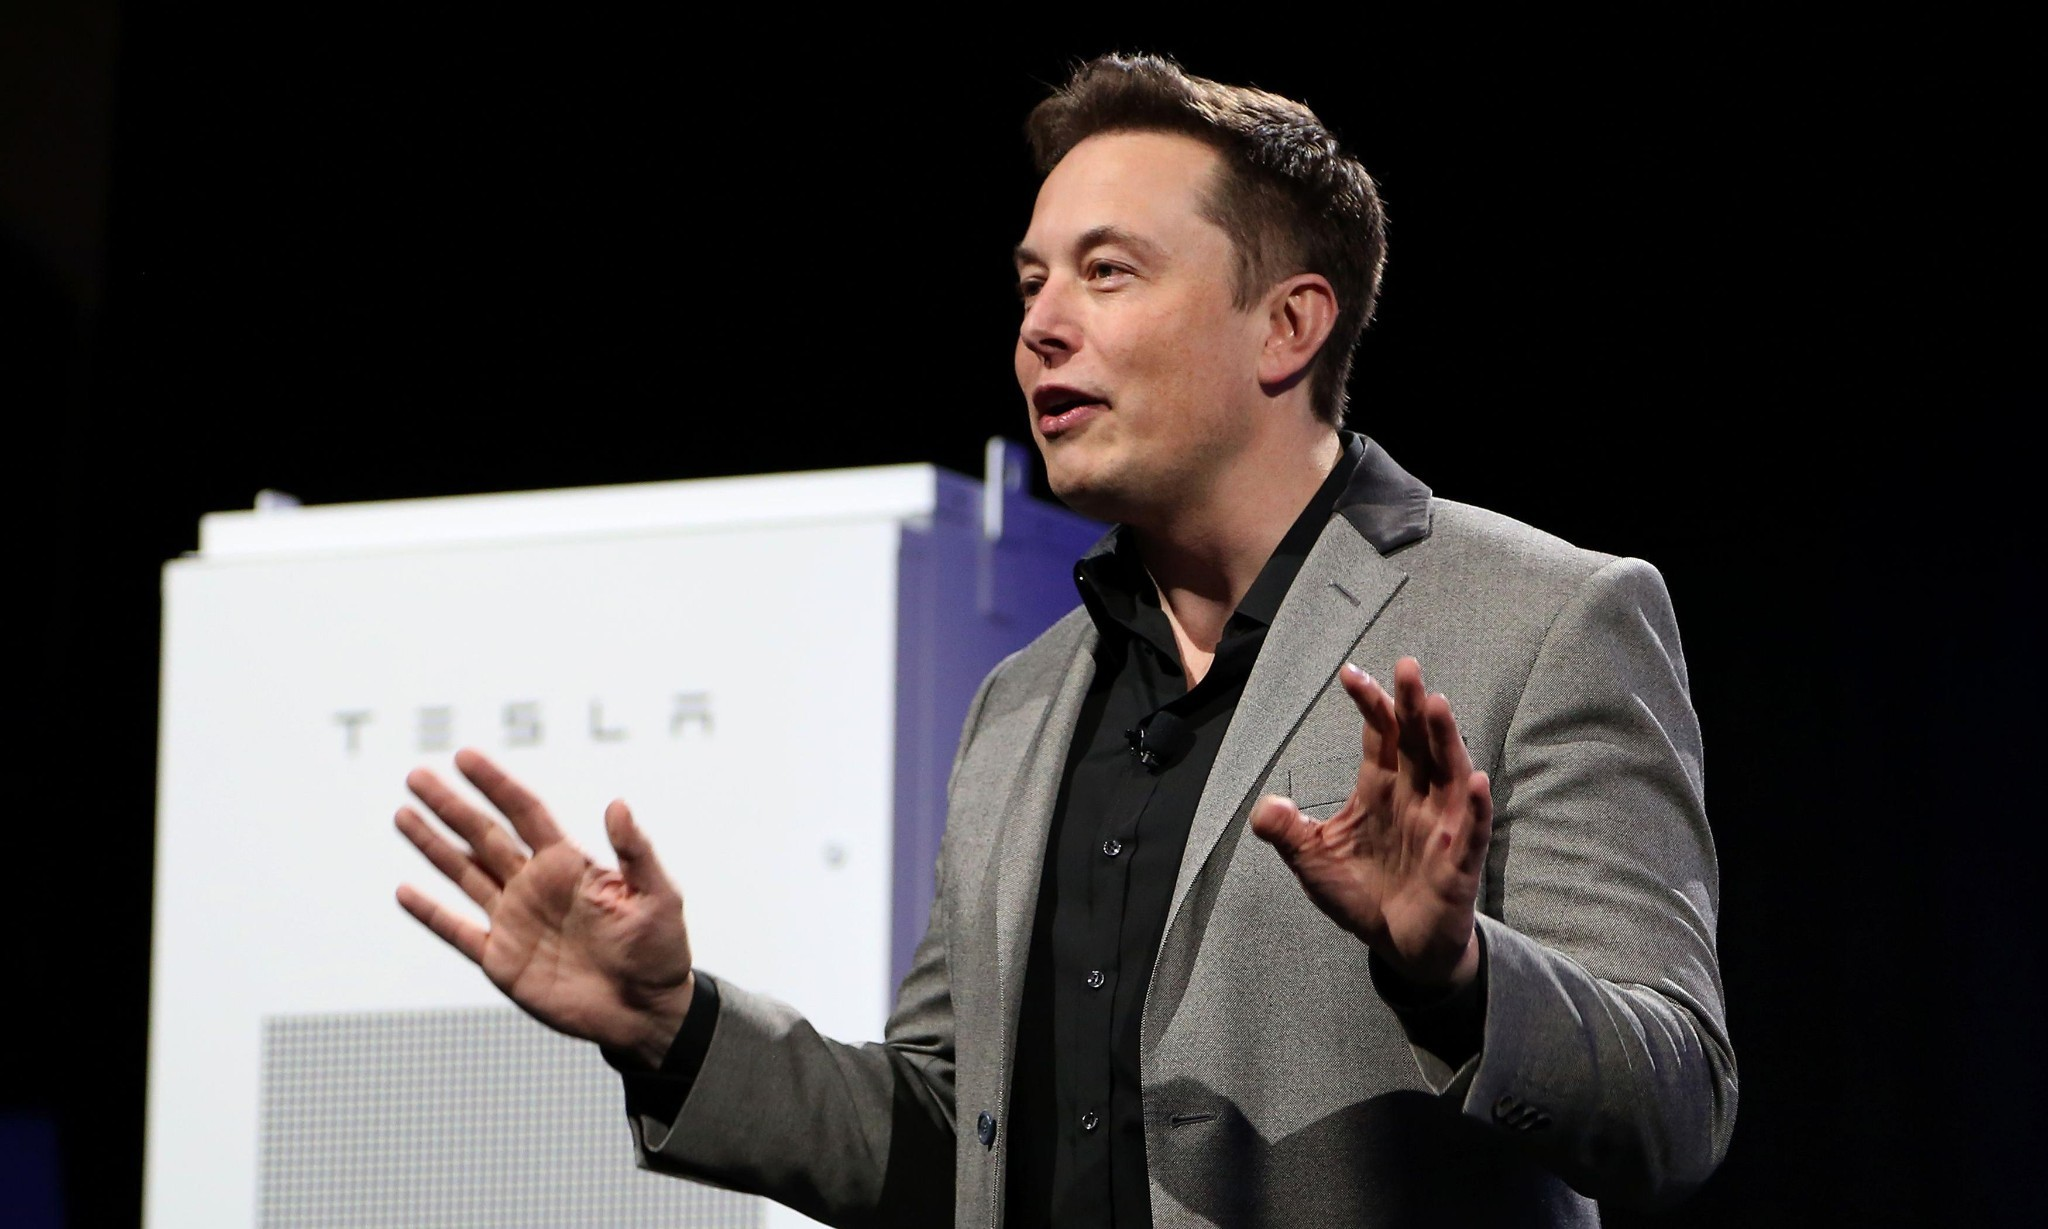 Elon Musk leads Tesla effort to build house roofs entirely out of solar panels